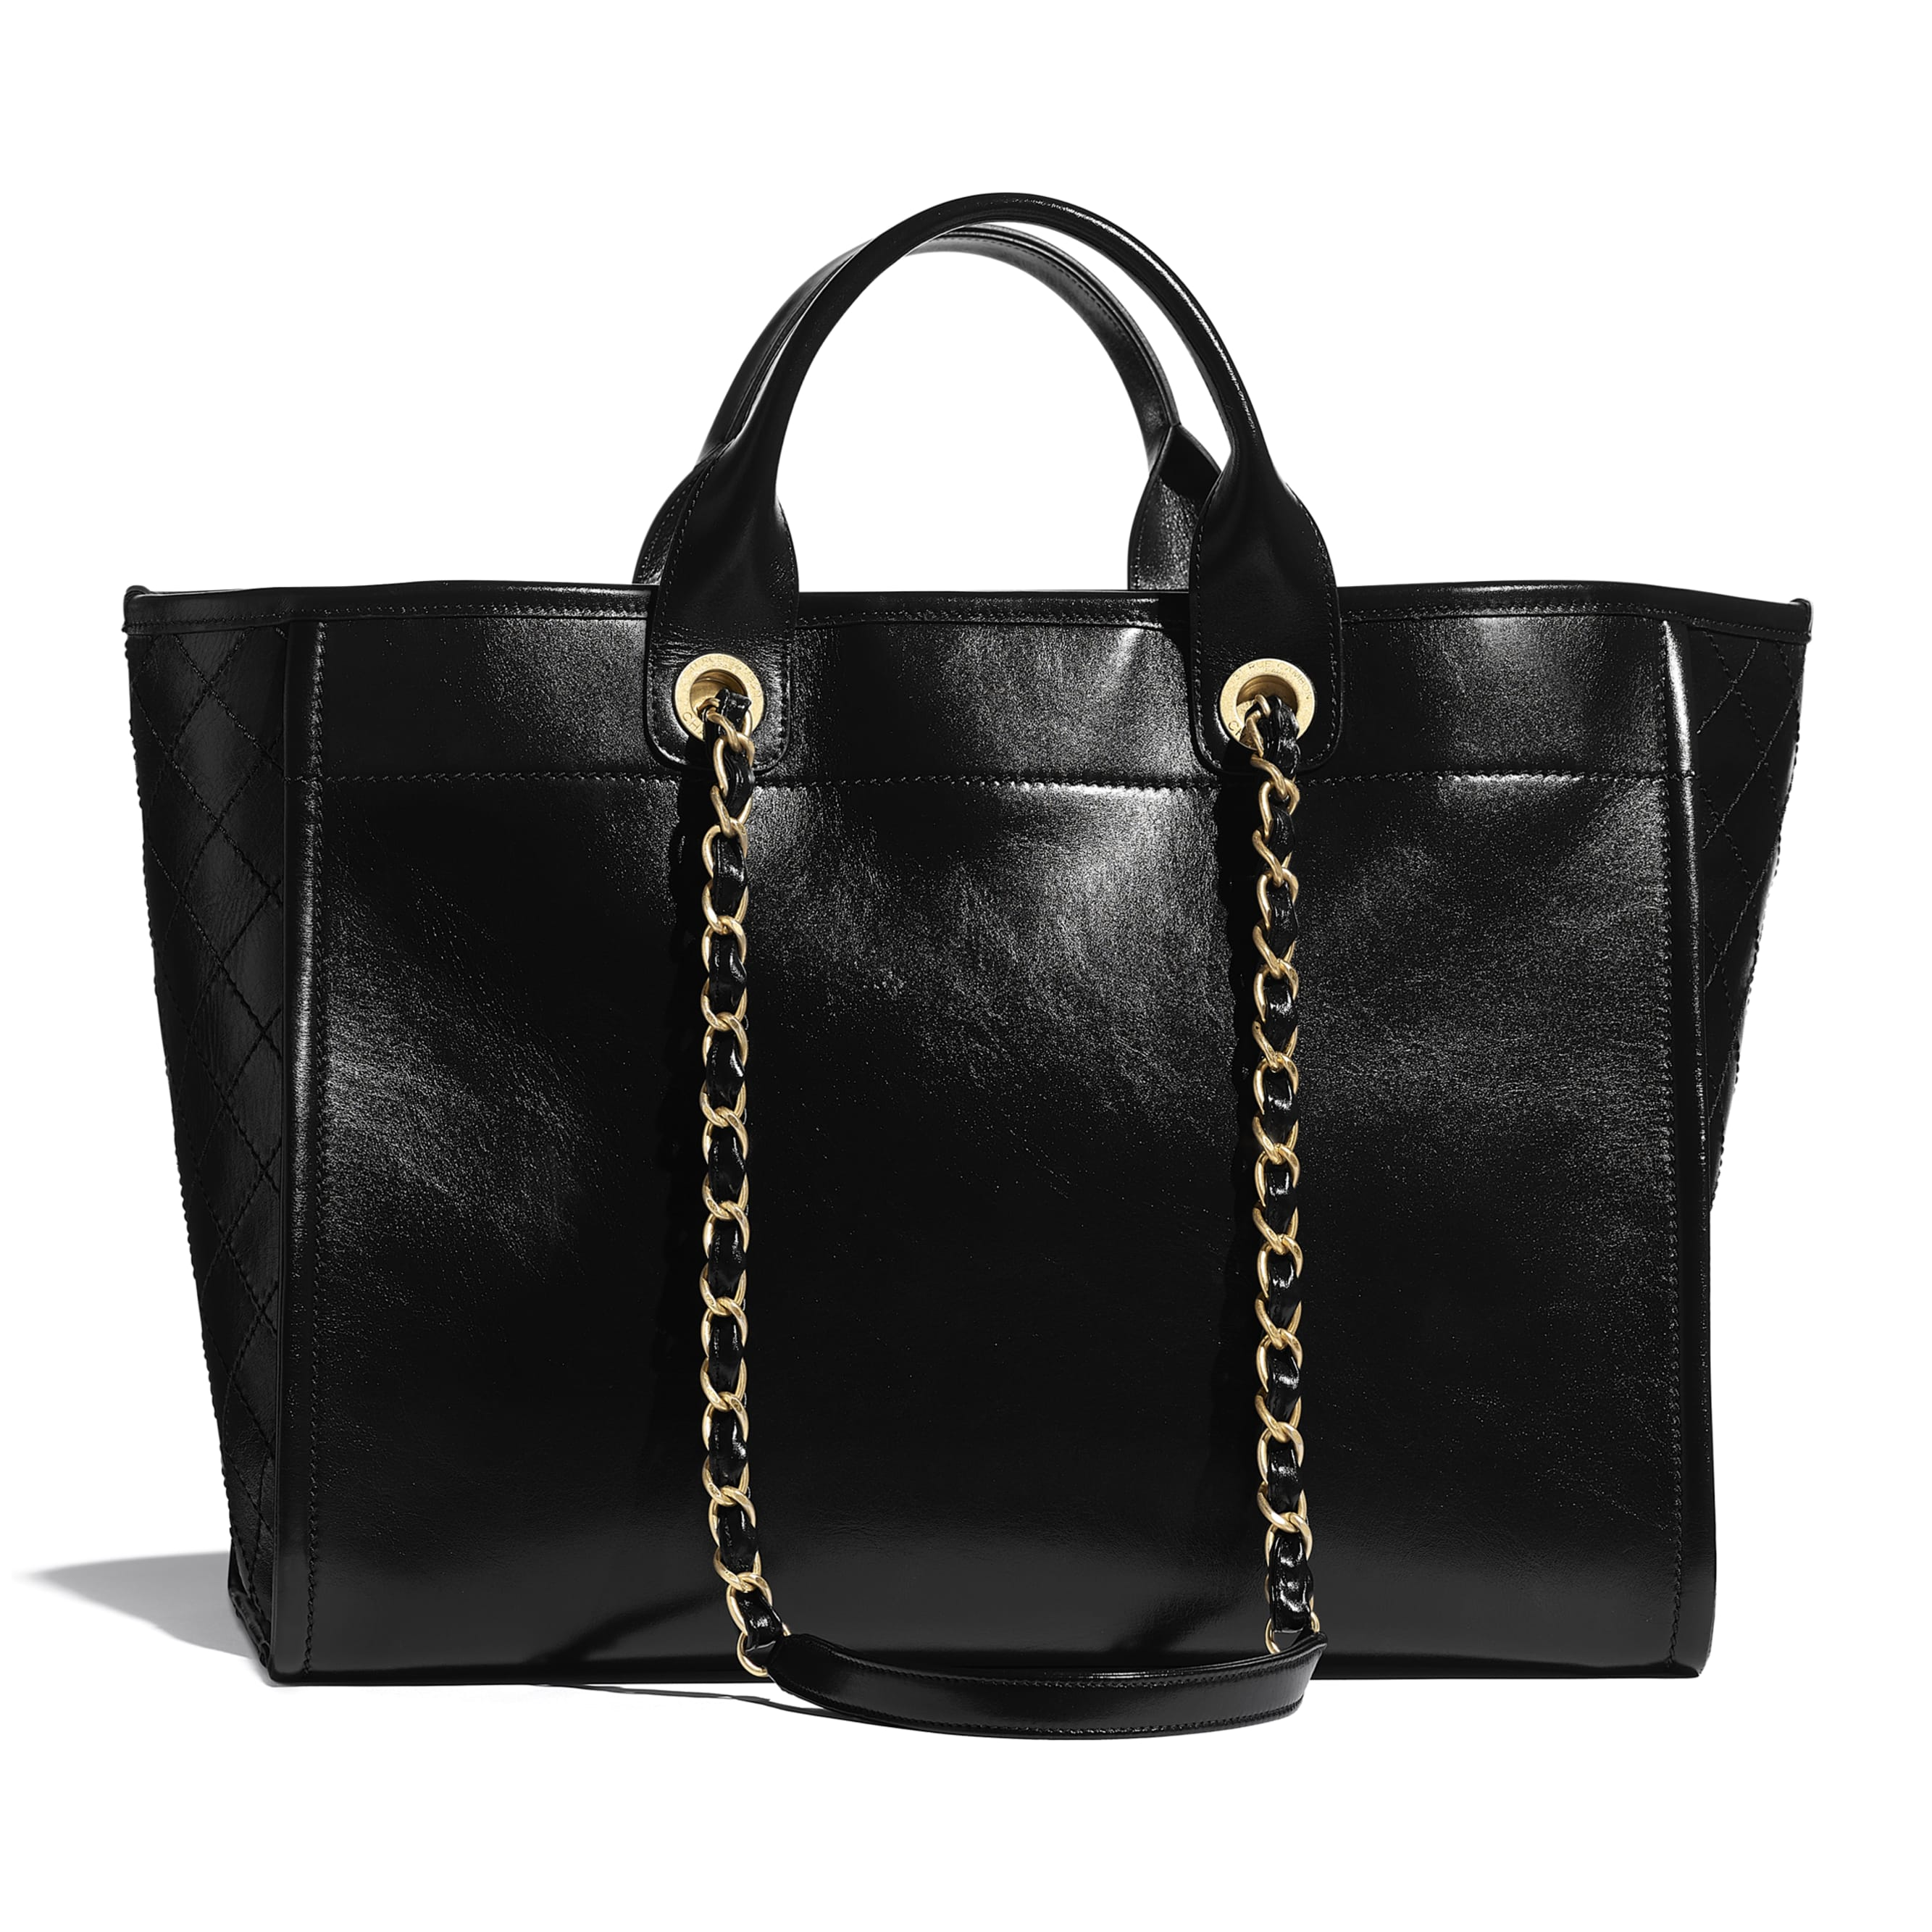 Large Tote - Black - Shiny Calfskin, Crystal Pearls, Diamante, Enamel, Gold-Tone & Ruthenium-Finish Metal - CHANEL - Alternative view - see standard sized version